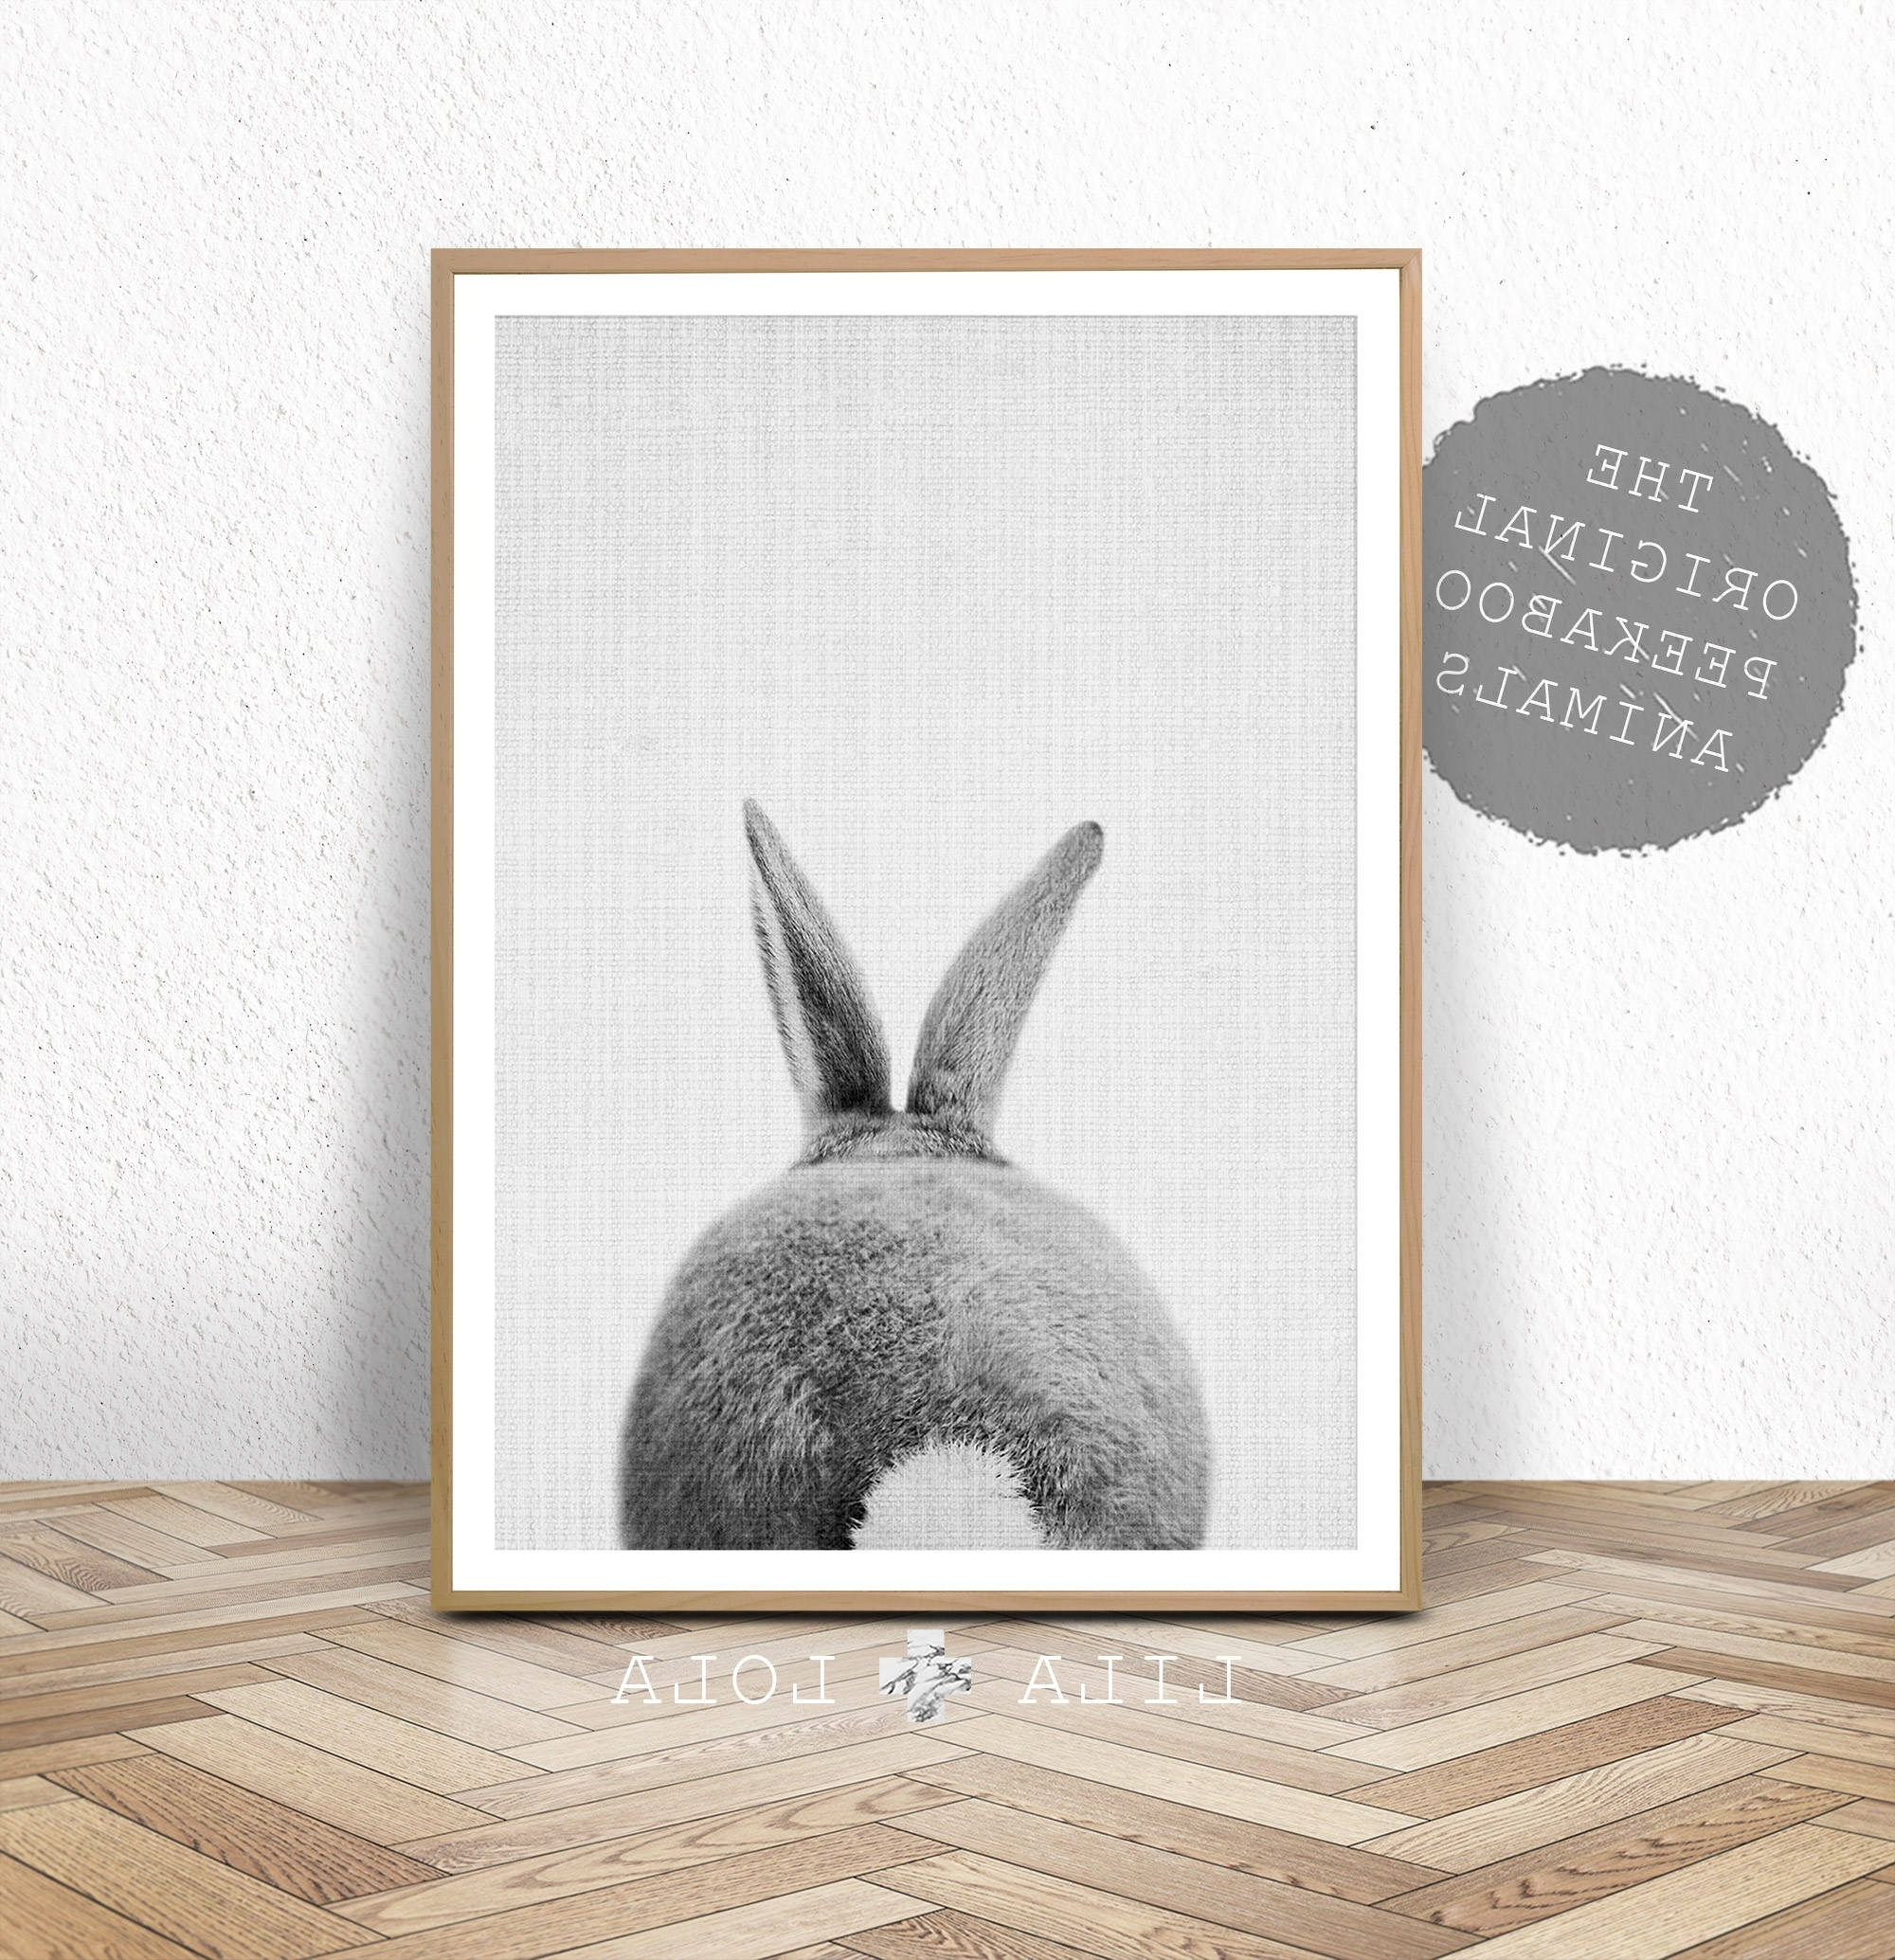 Preferred Nursery Print, Bunny Rabbit Tail Wall Art, Printable Instant Digital Intended For Bunny Wall Art (View 12 of 15)